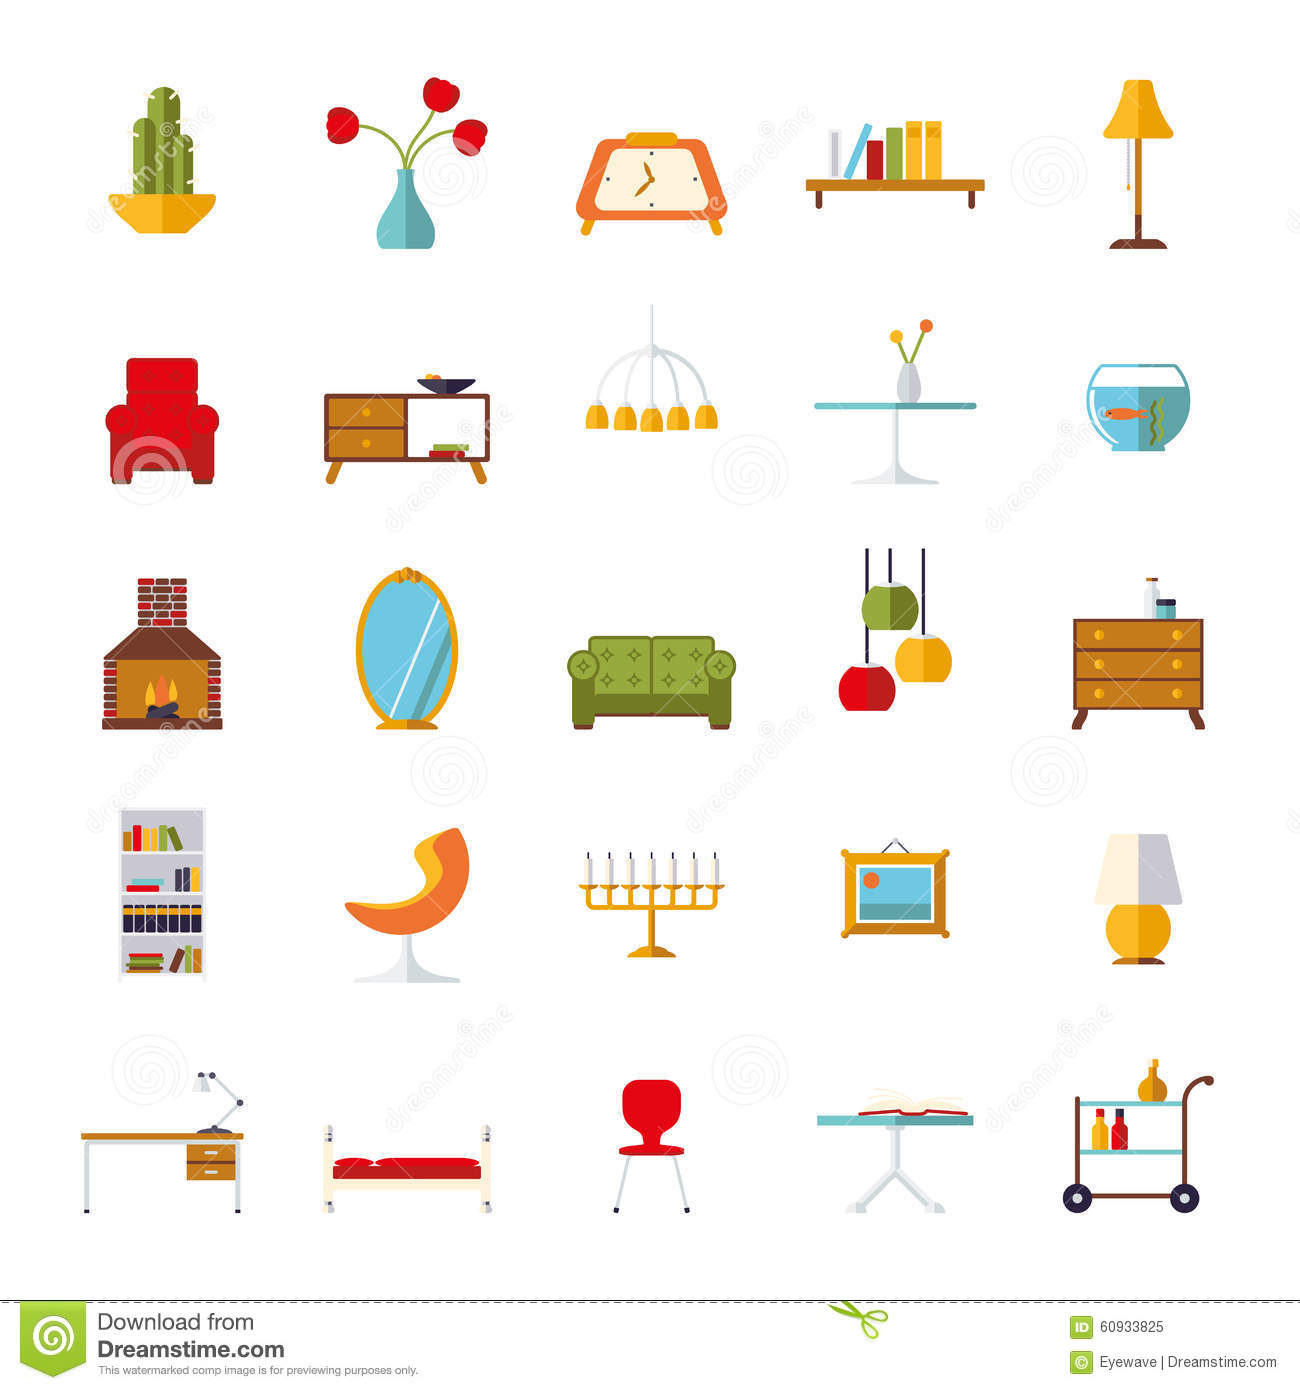 Home Interior Flat Design Vector Icons Collection Stock Vector - Illustration of design, coffee